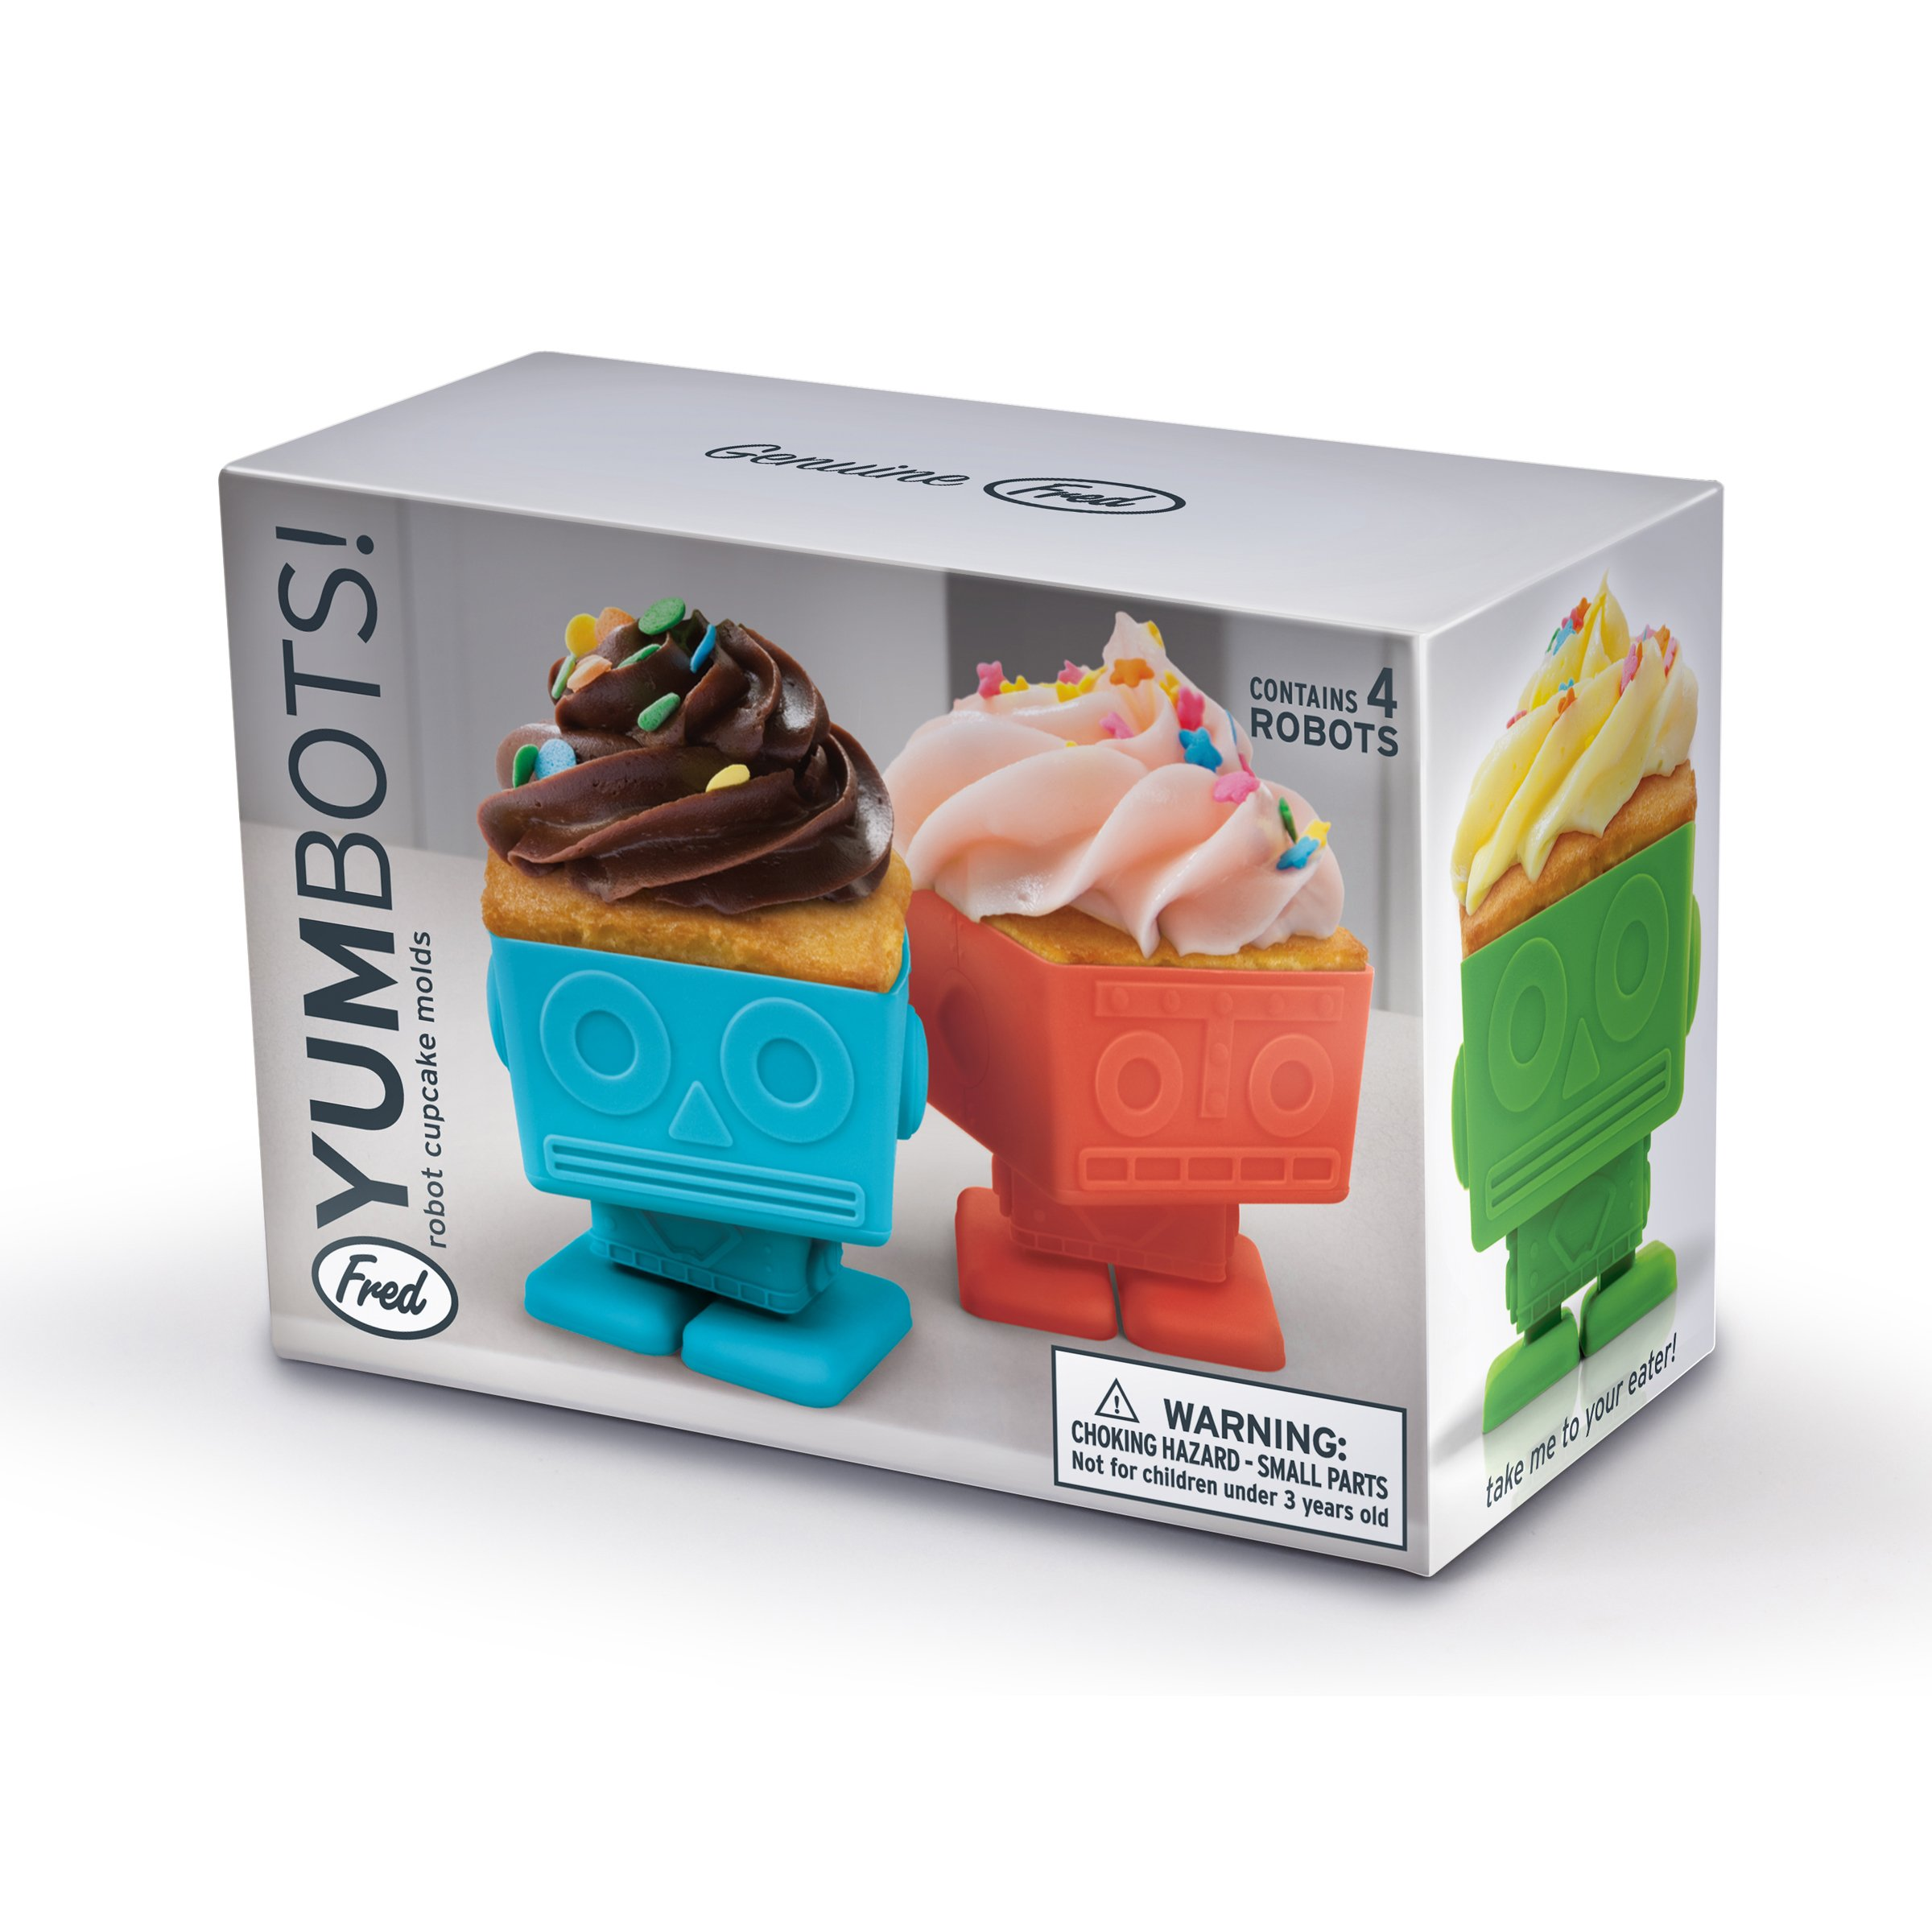 Fred YUMBOTS Robot Baking Cups, Set of 4 by Fred & Friends (Image #2)